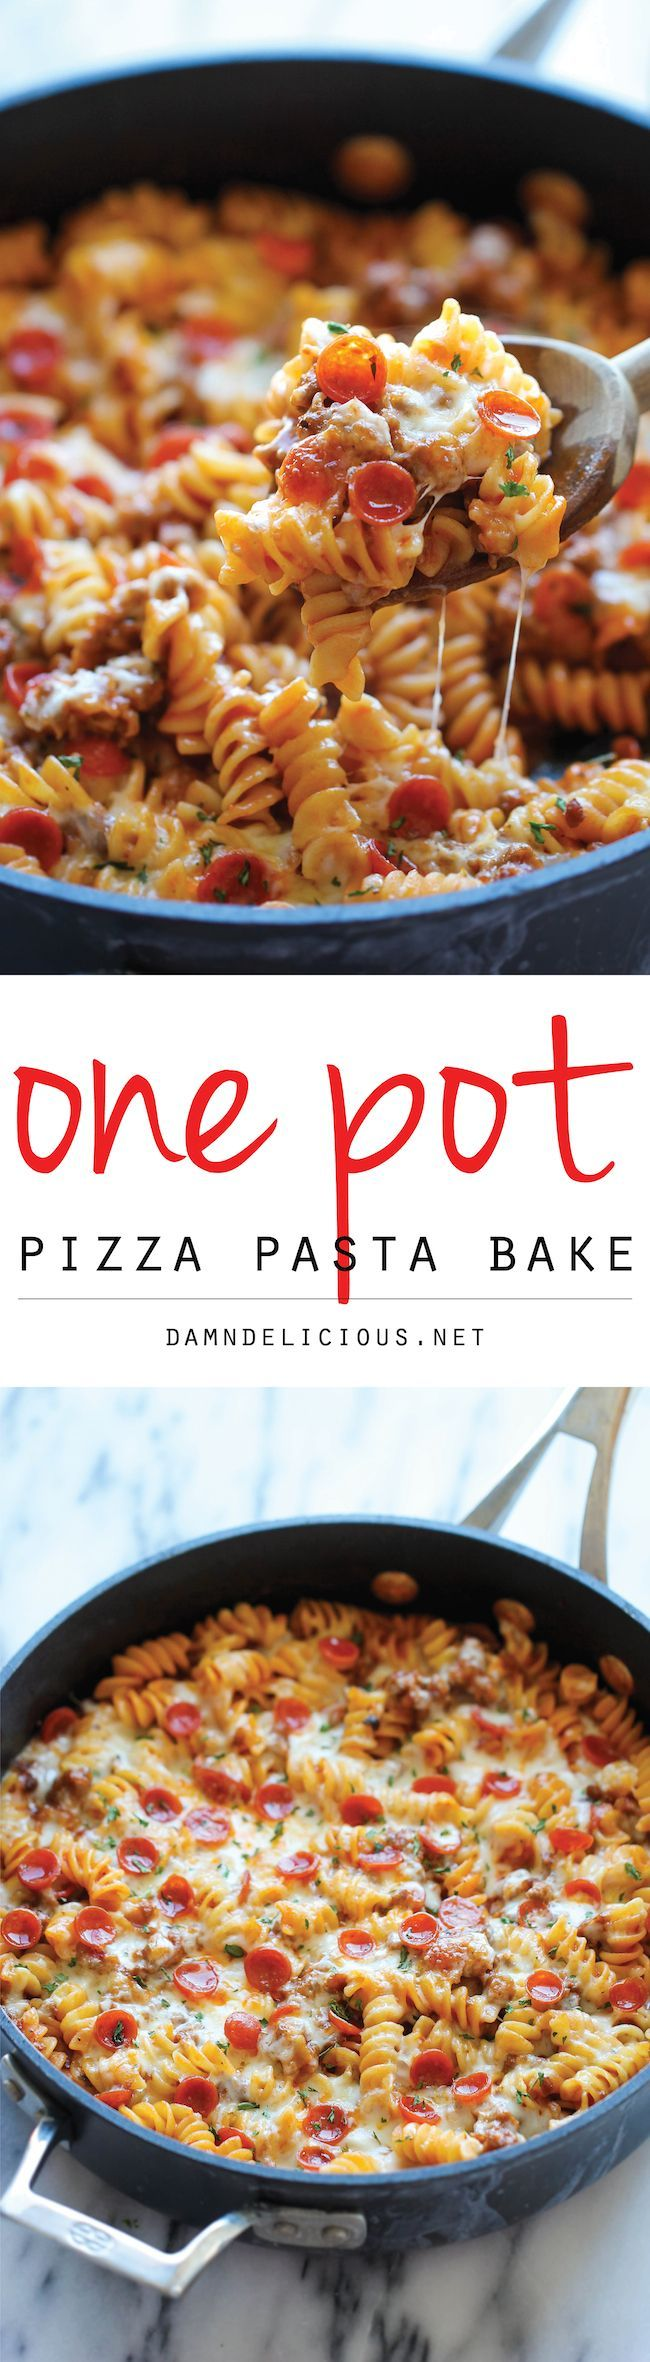 One Pot Pizza Pasta Bake - An easy crowd-pleasing one pot meal that the whole family will love! Everyone will be begging for seconds! #OnePotPasta